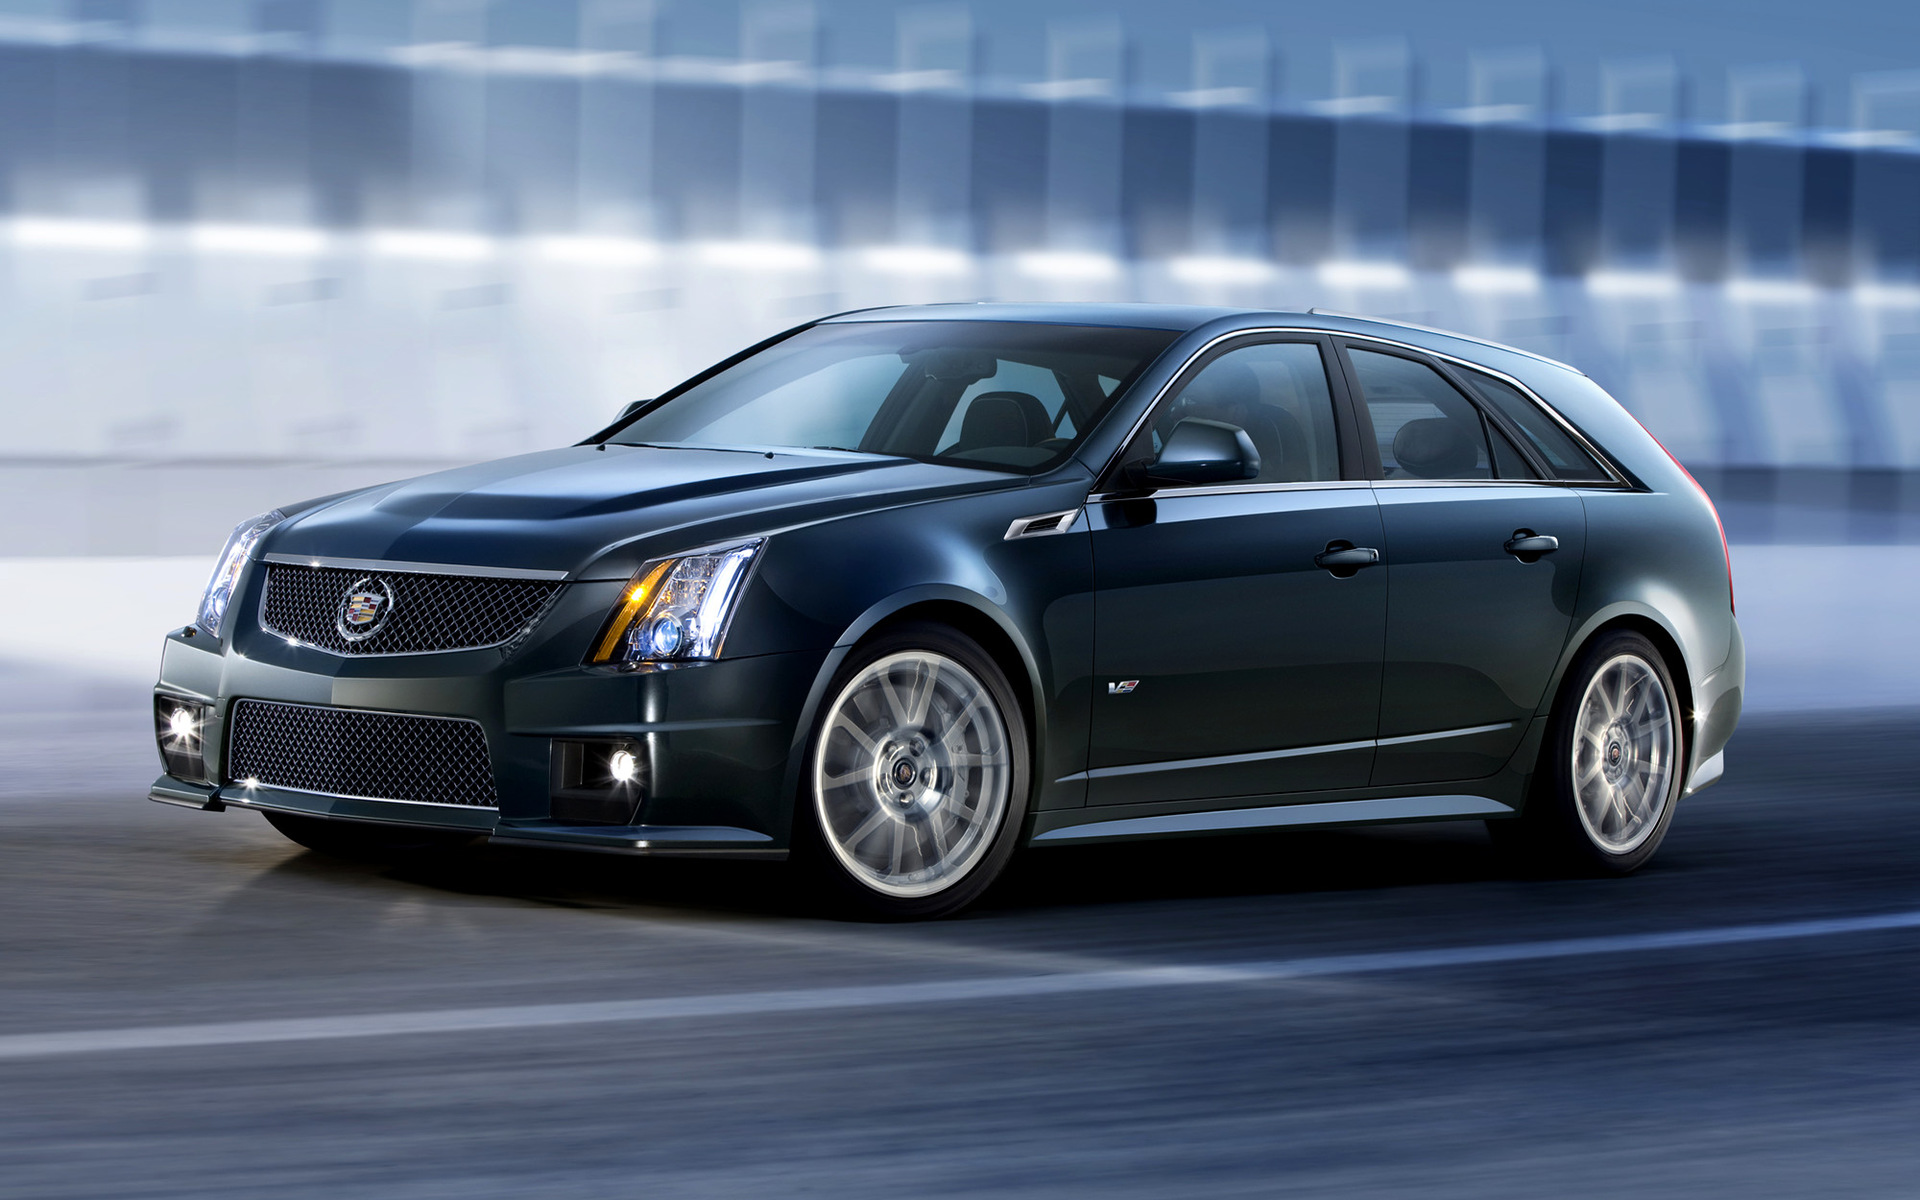 2010 Cadillac Cts V Sport Wagon Wallpapers And Hd Images